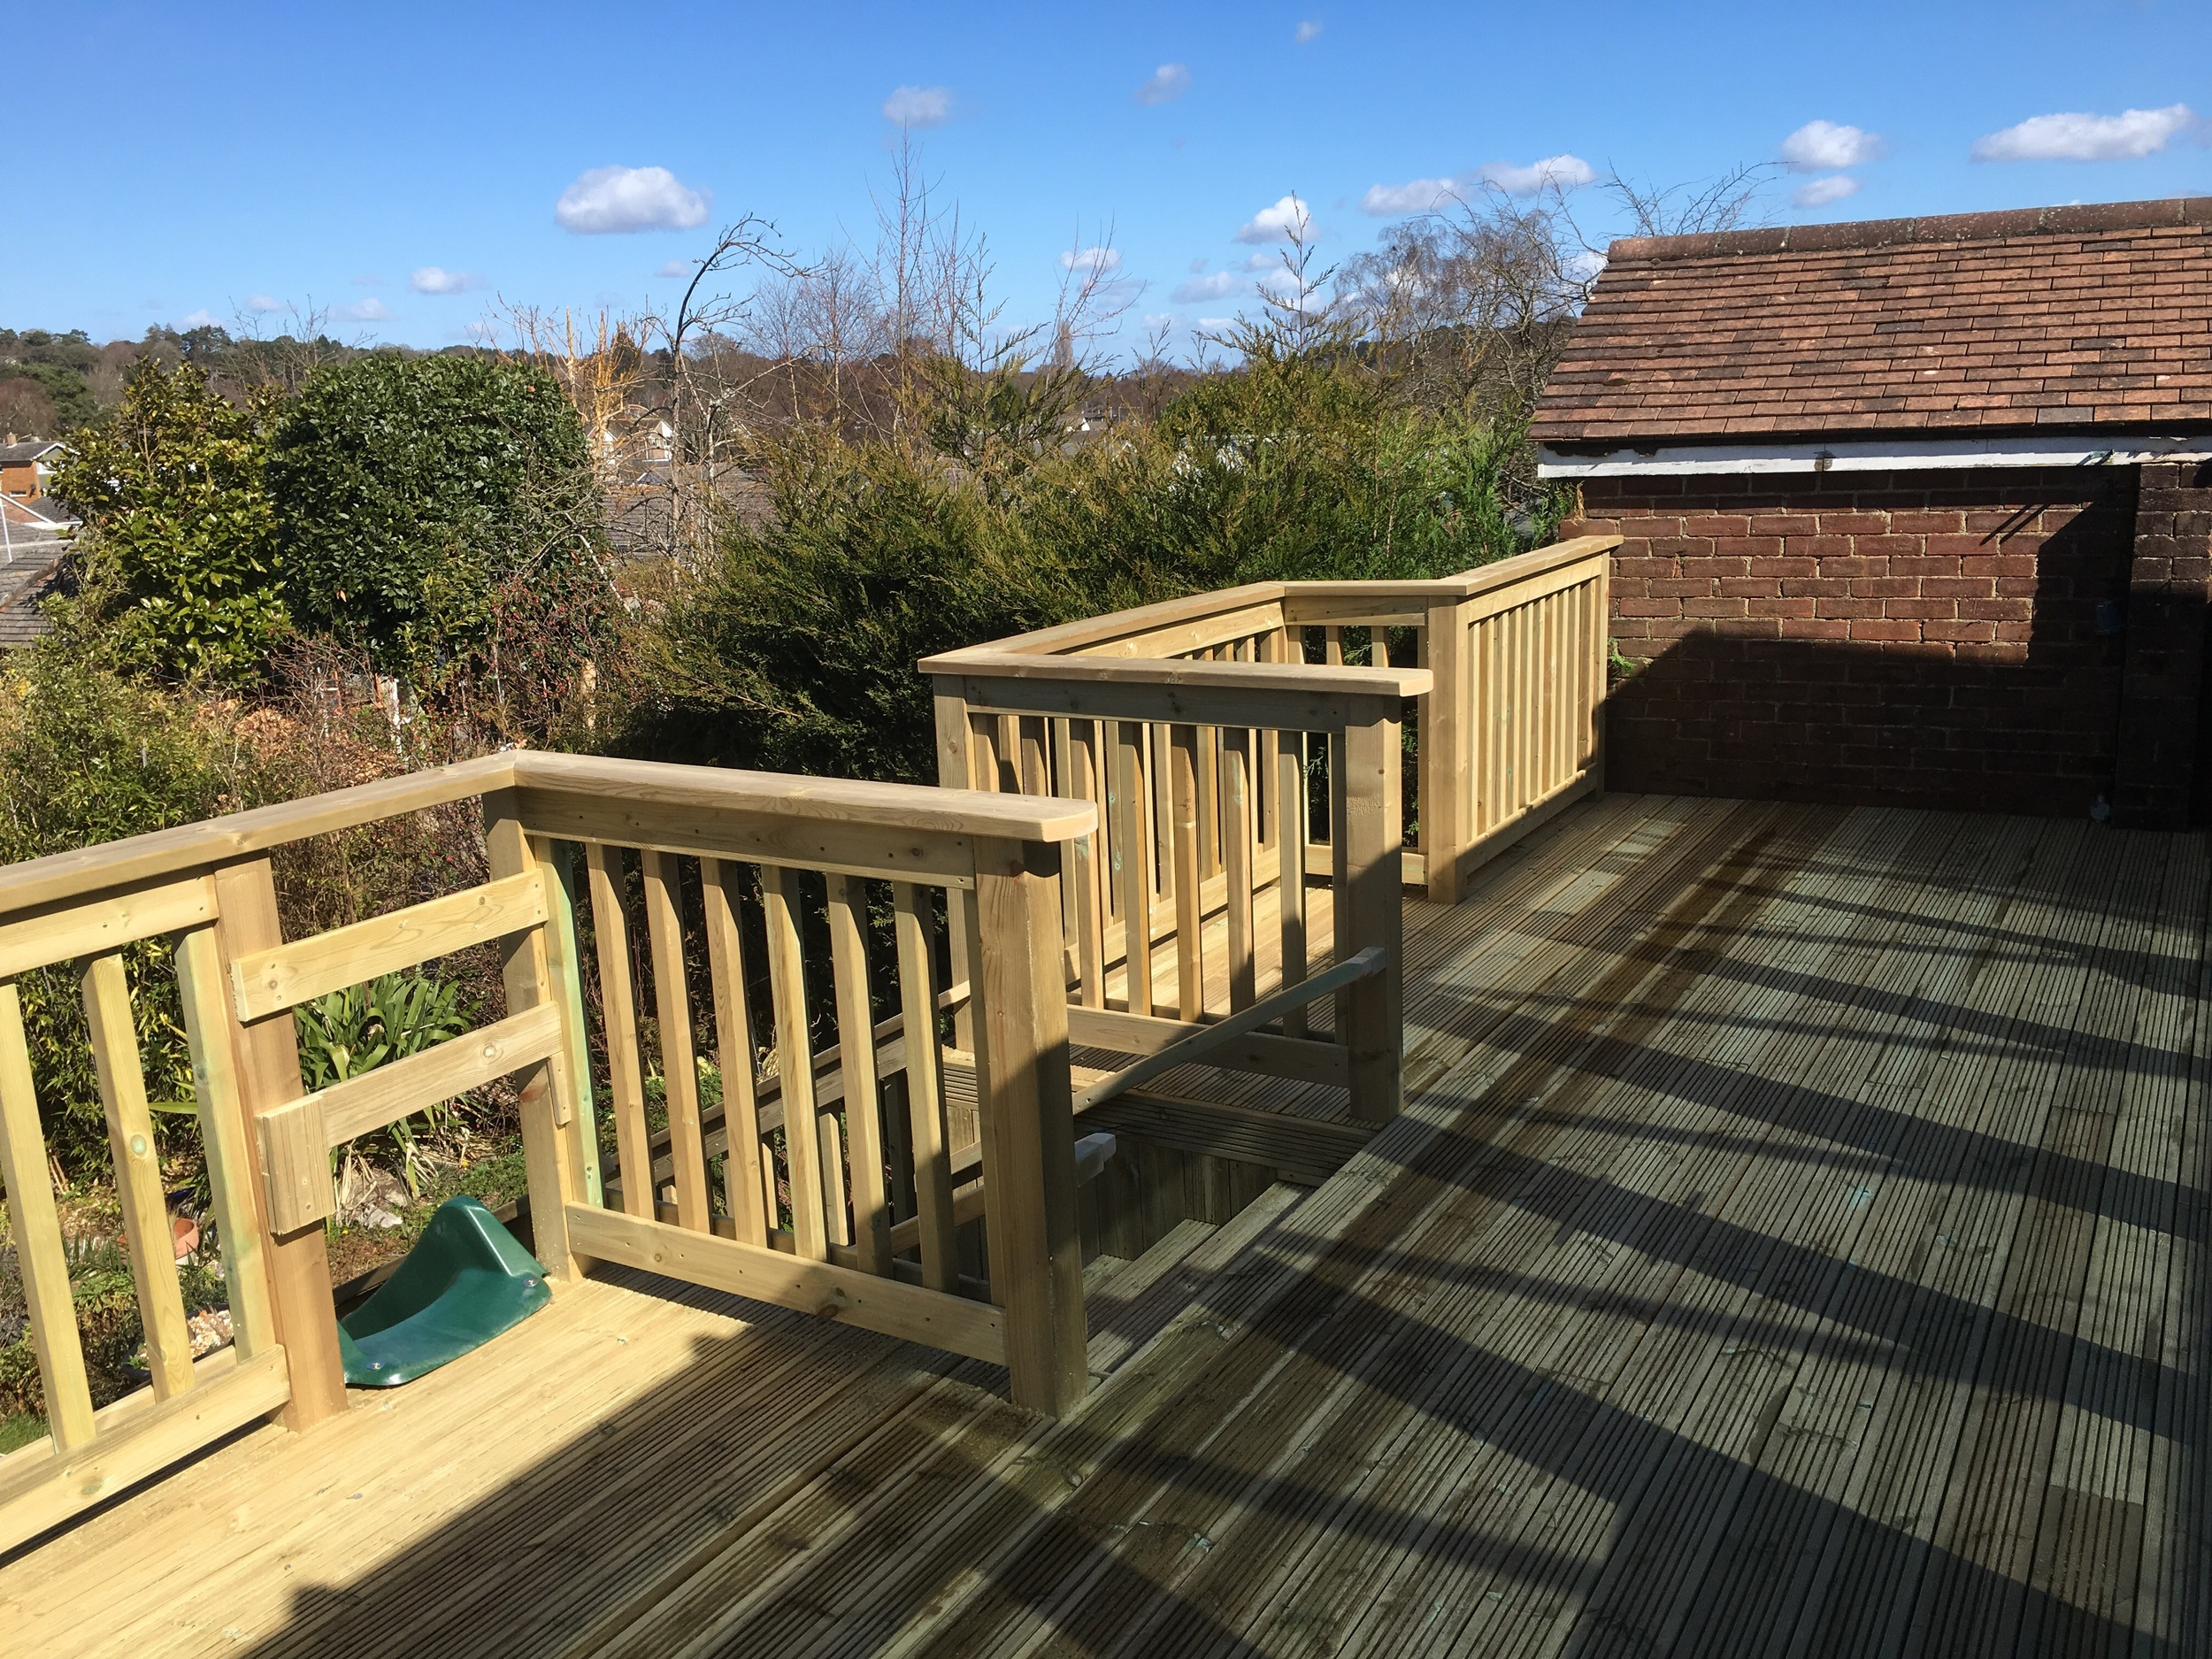 For the balustrade we used a square profile spindle.